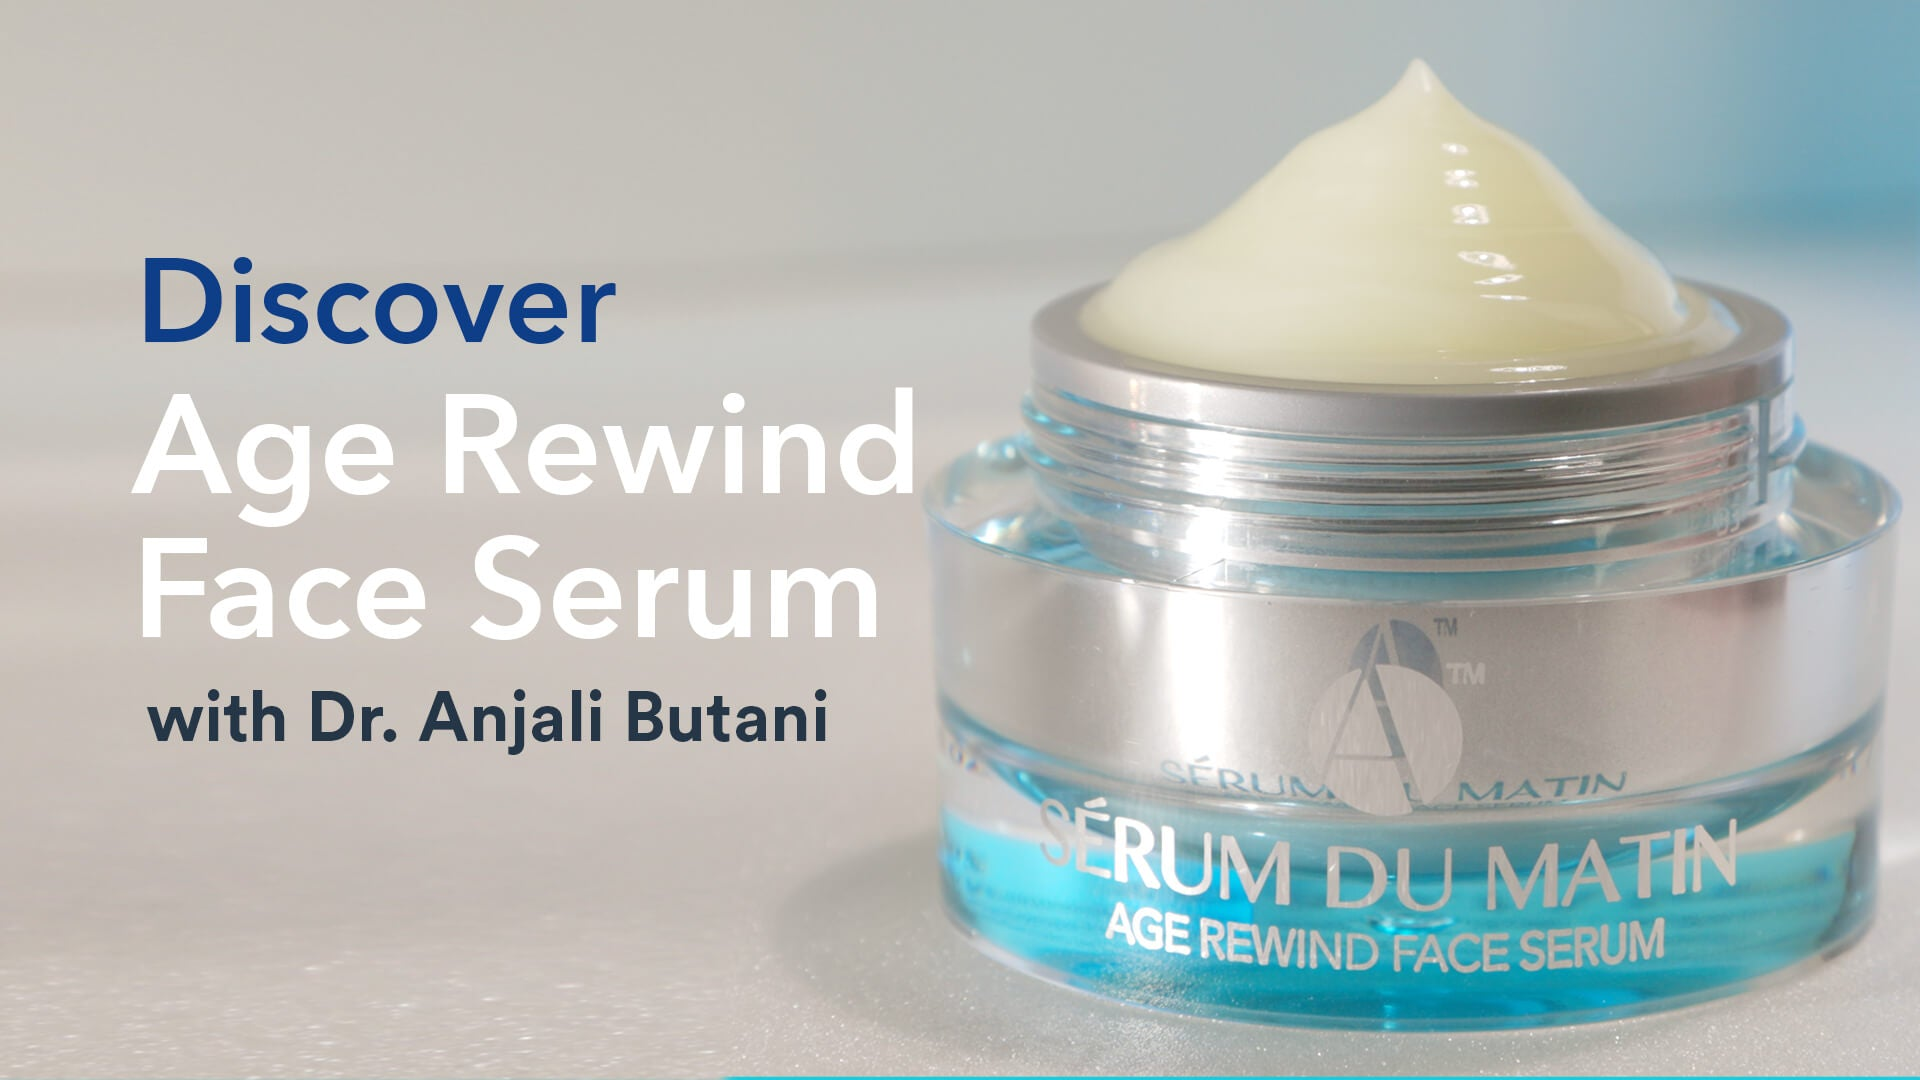 Age Rewind Face Serum Discover Video